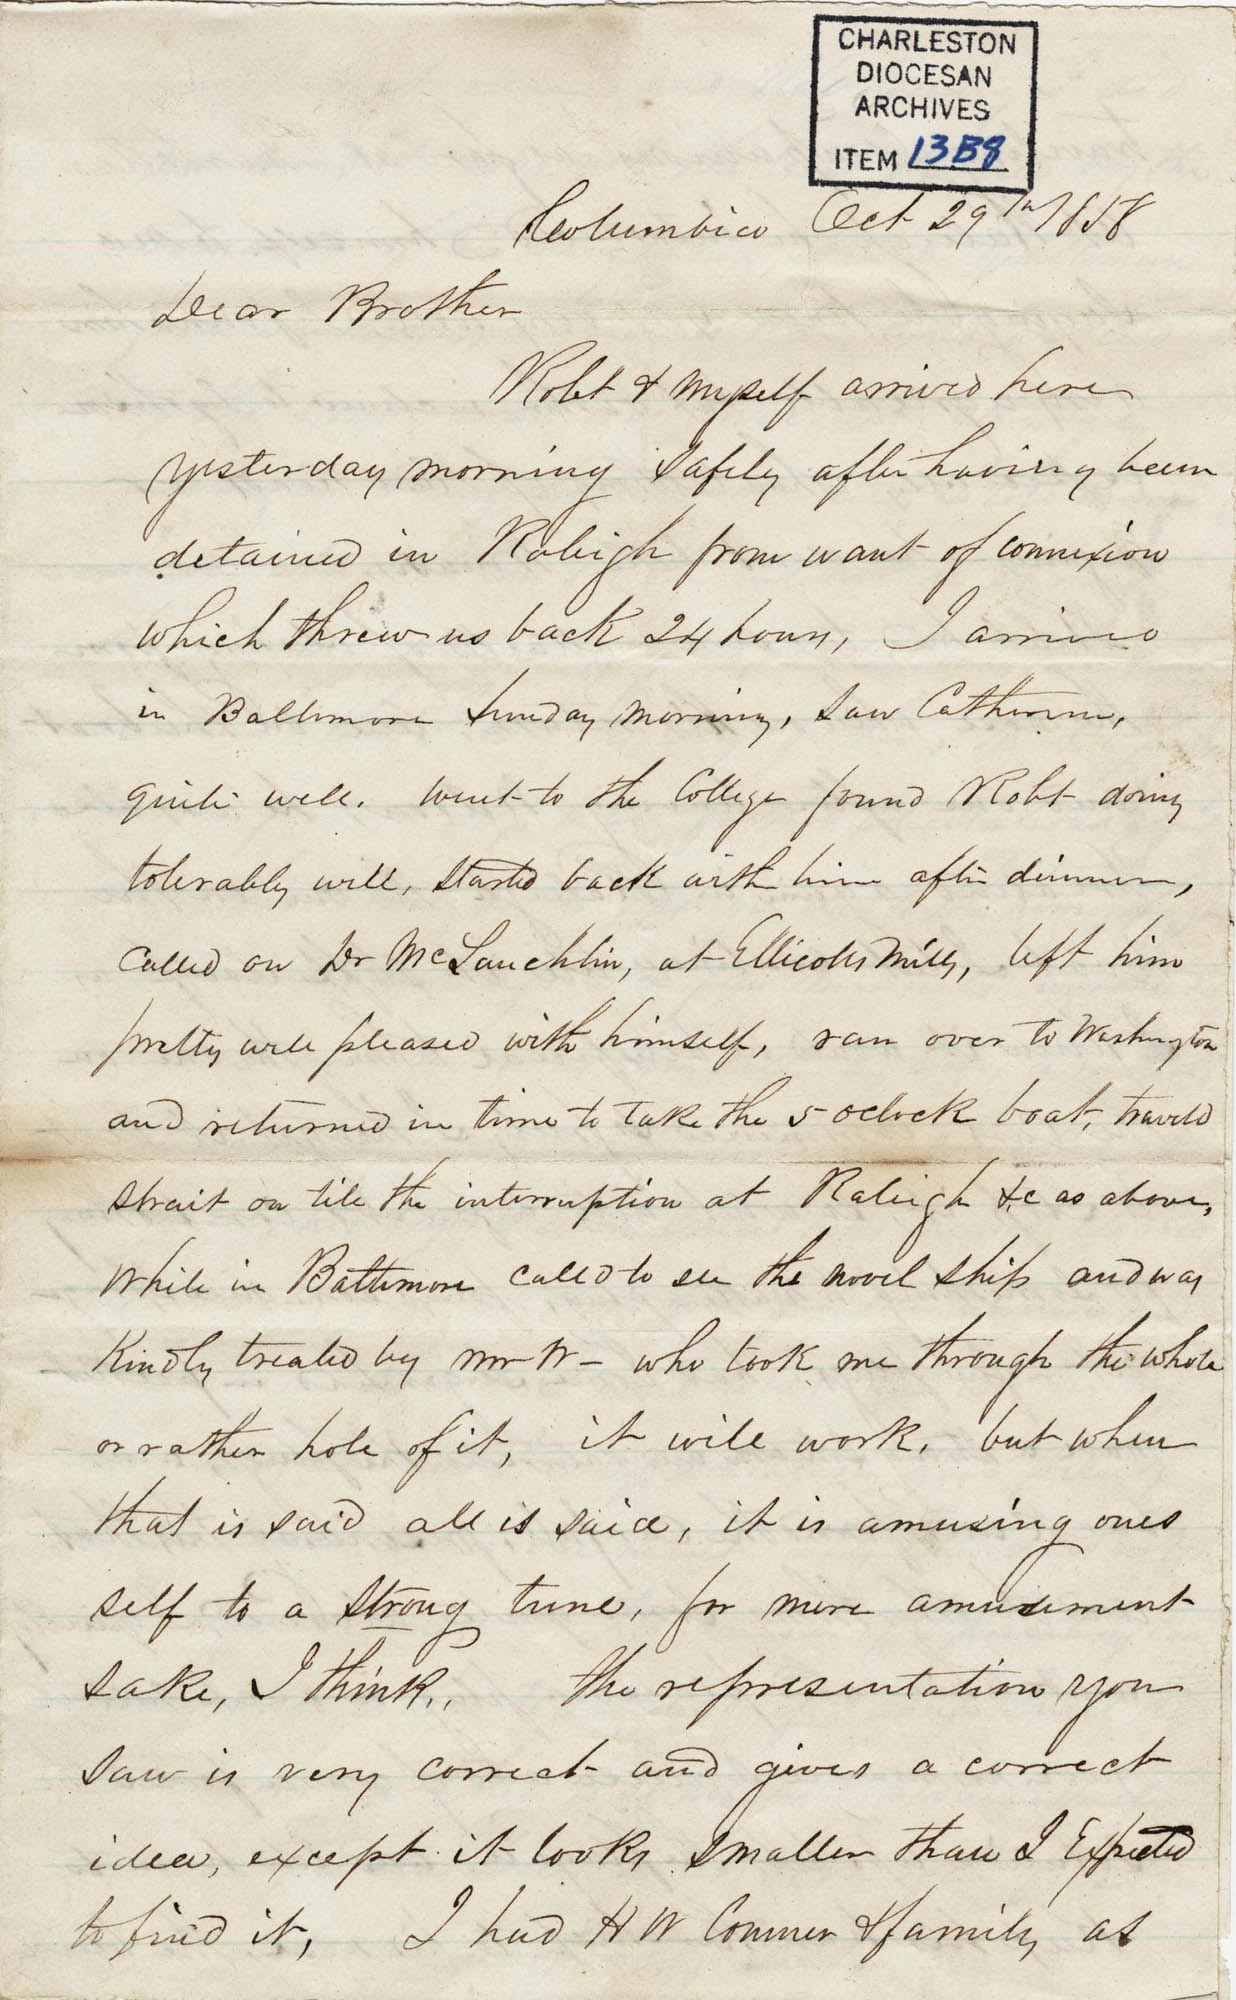 019. John Lynch to Bp Patrick Lynch -- October 29, 1858